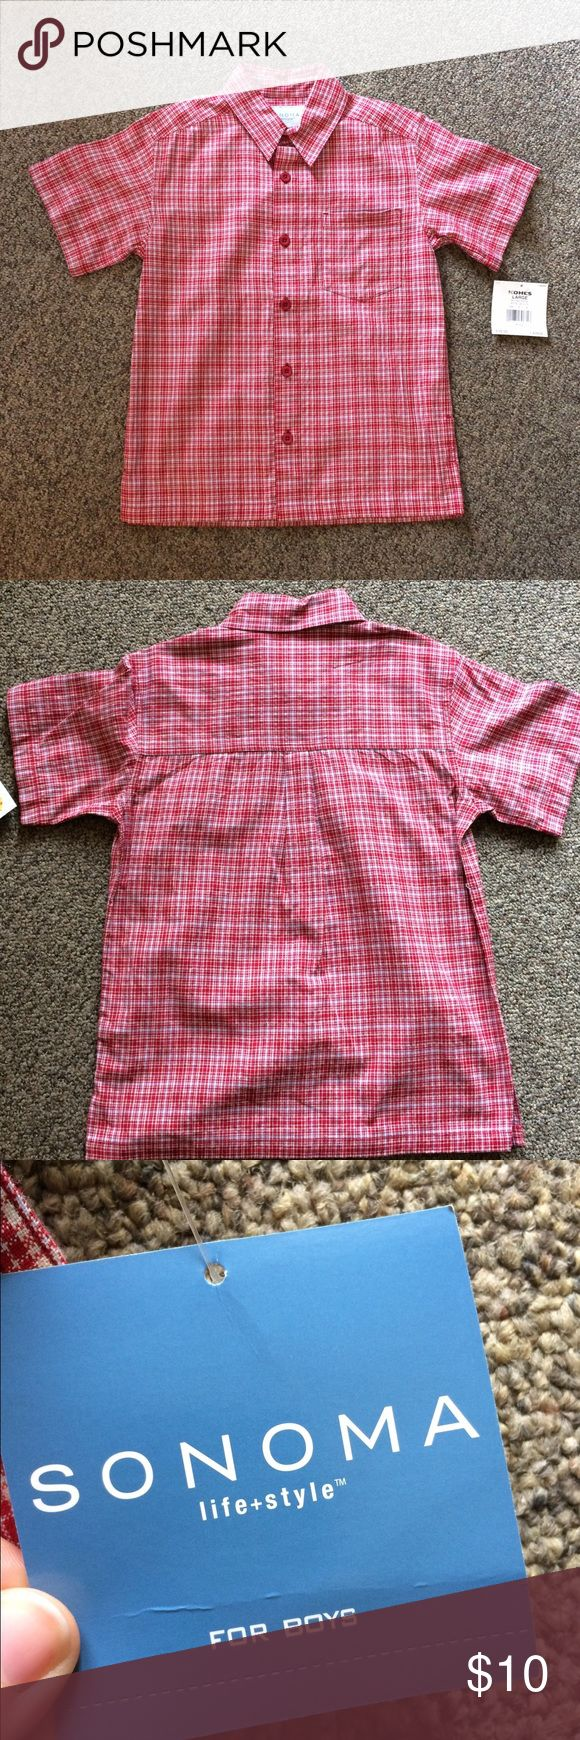 NWT boys dress shirt New with tags from Kohls. Sanoma brand. Boys size large button up dress tee. Sanoma Shirts & Tops Button Down Shirts